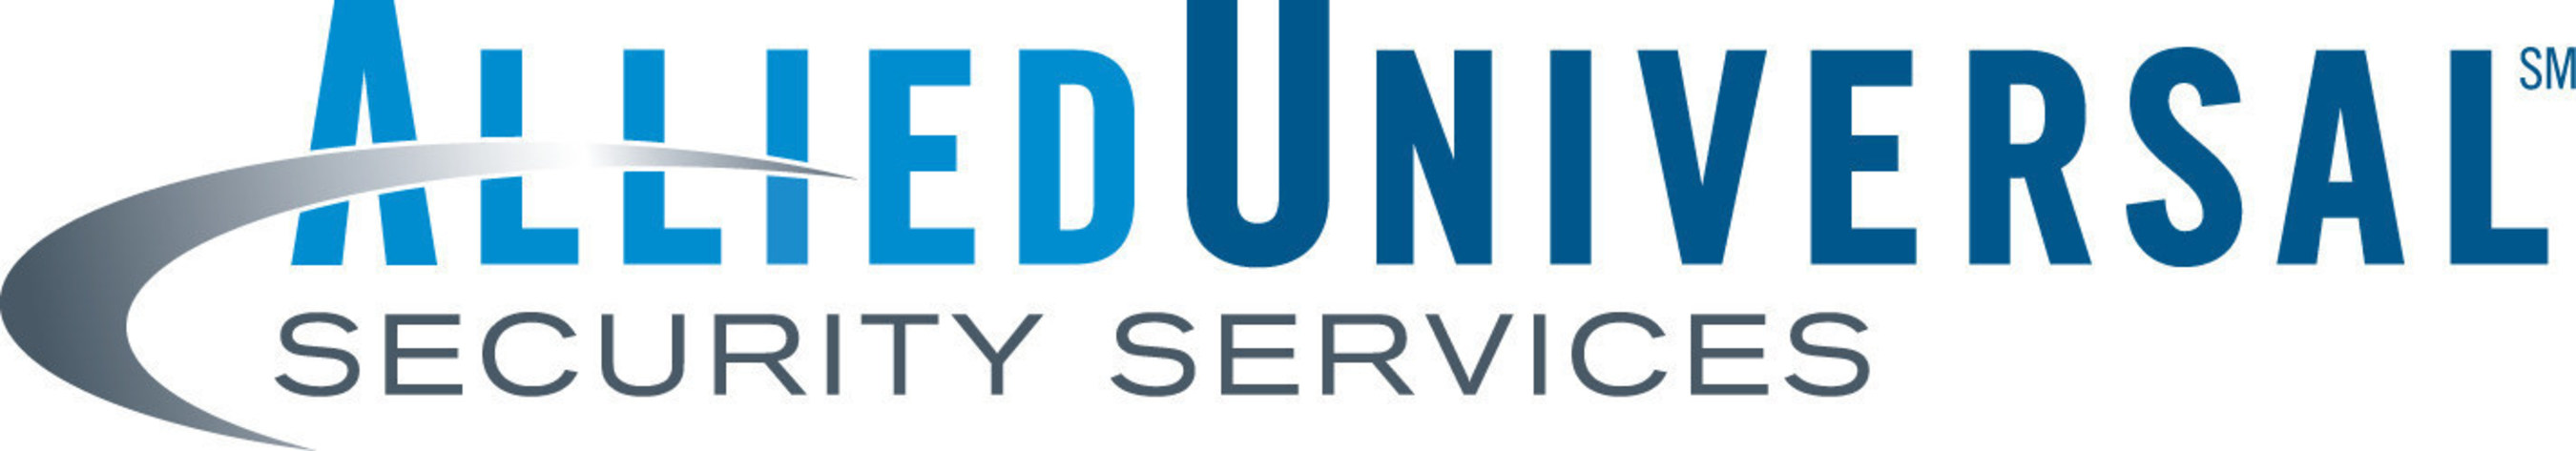 New Allied Universal Officially Launched to Lead Security and Facility Services Industries. www.AUS.com